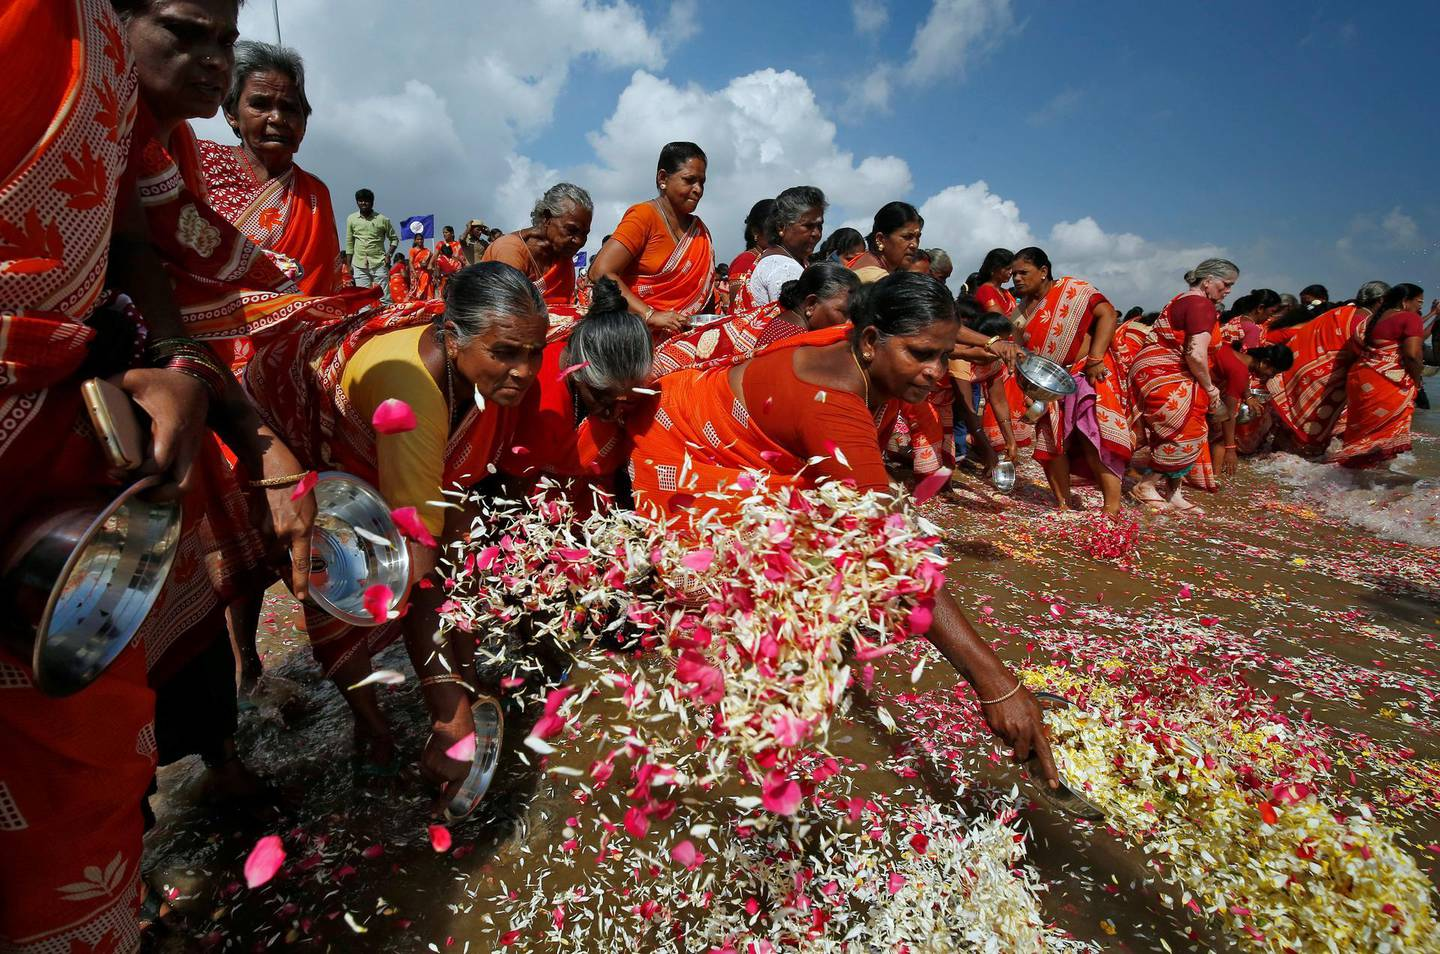 Women scatter flower petals in the waters of the Bay of Bengal during a prayer ceremony for the victims of the 2004 tsunami on the 15th anniversary of the disaster, at Marina beach in Chennai, India, December 26, 2019. REUTERS/P. Ravikumar